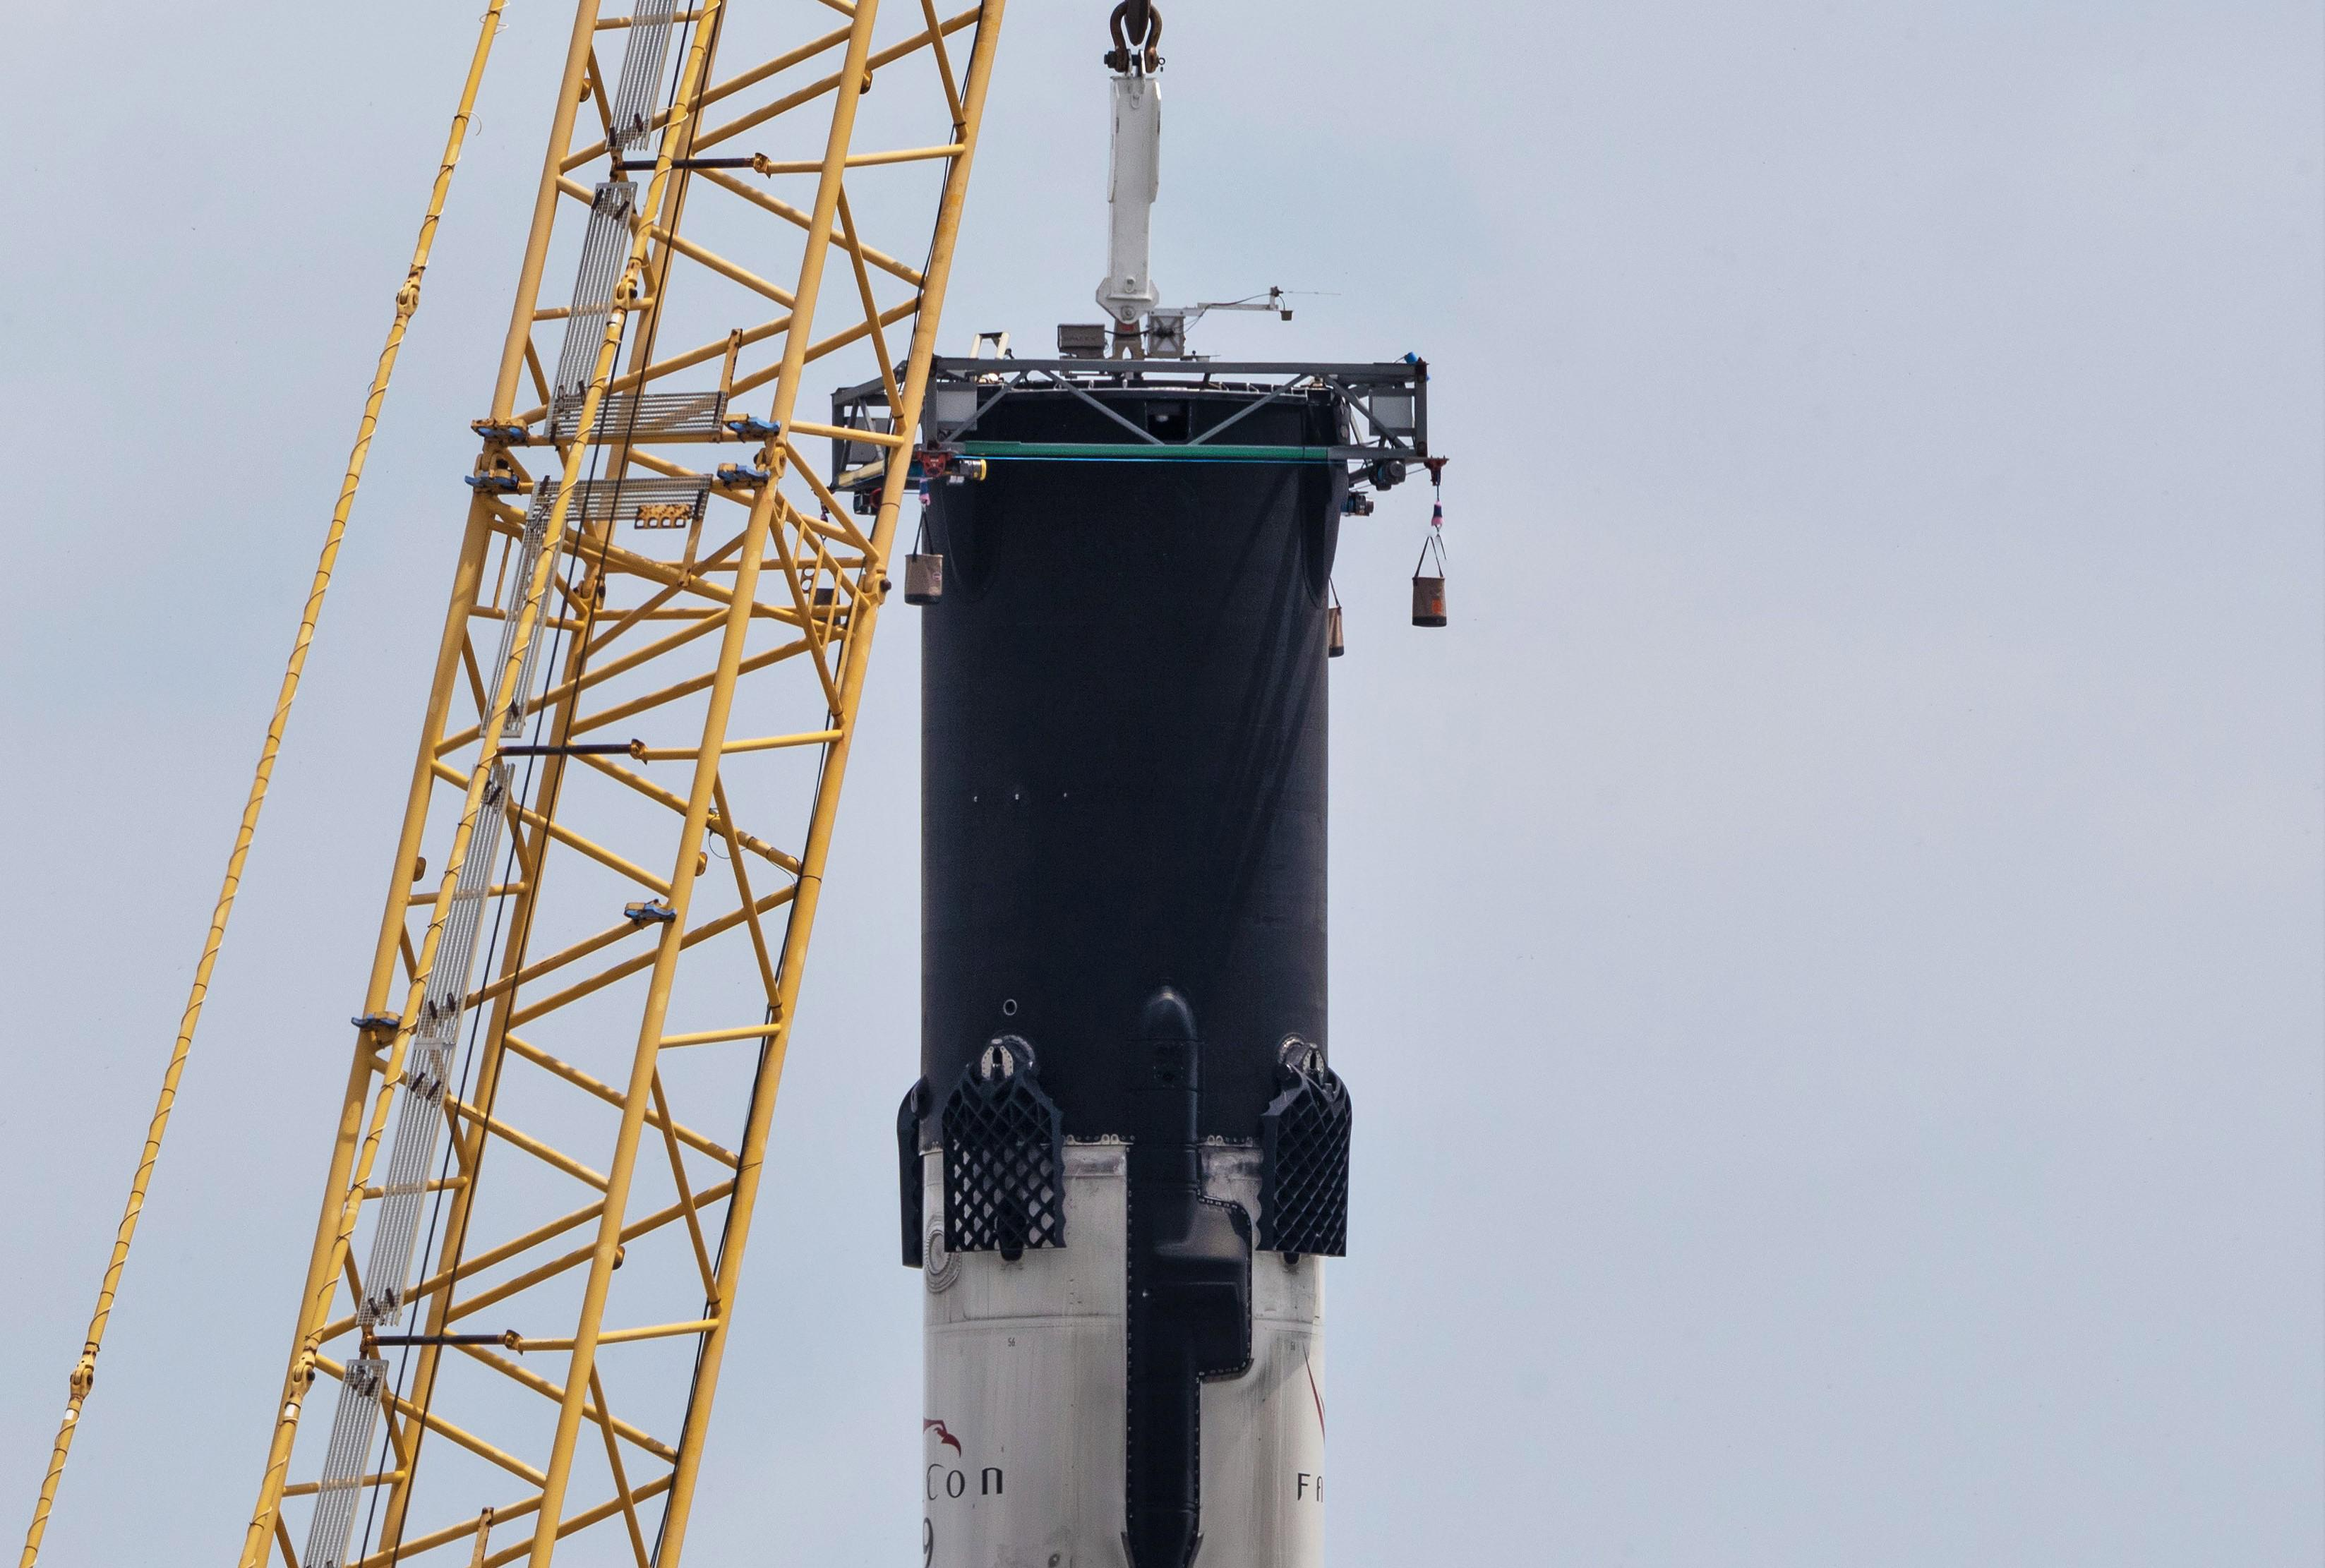 Falcon 9 B1056 recovery 050619 (Tom Cross) pano 1 leg retractor 1